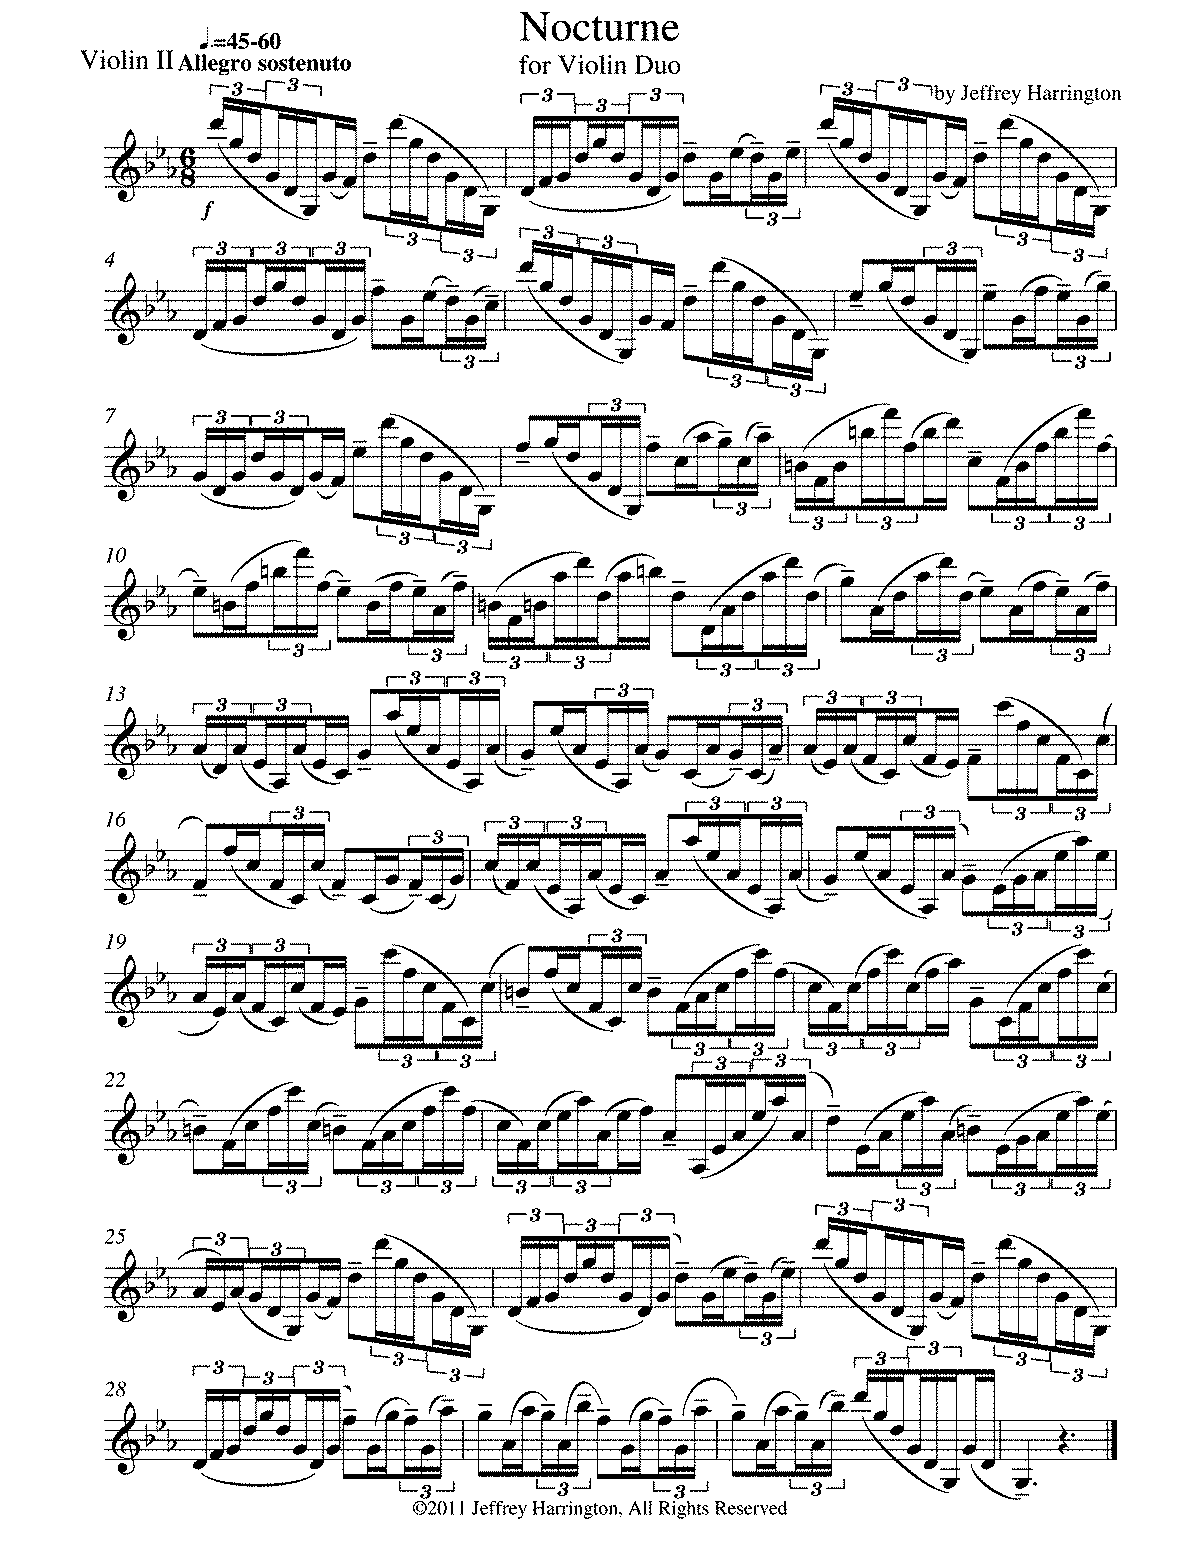 PMLP221817-nocturne for violin duo violin I.pdf